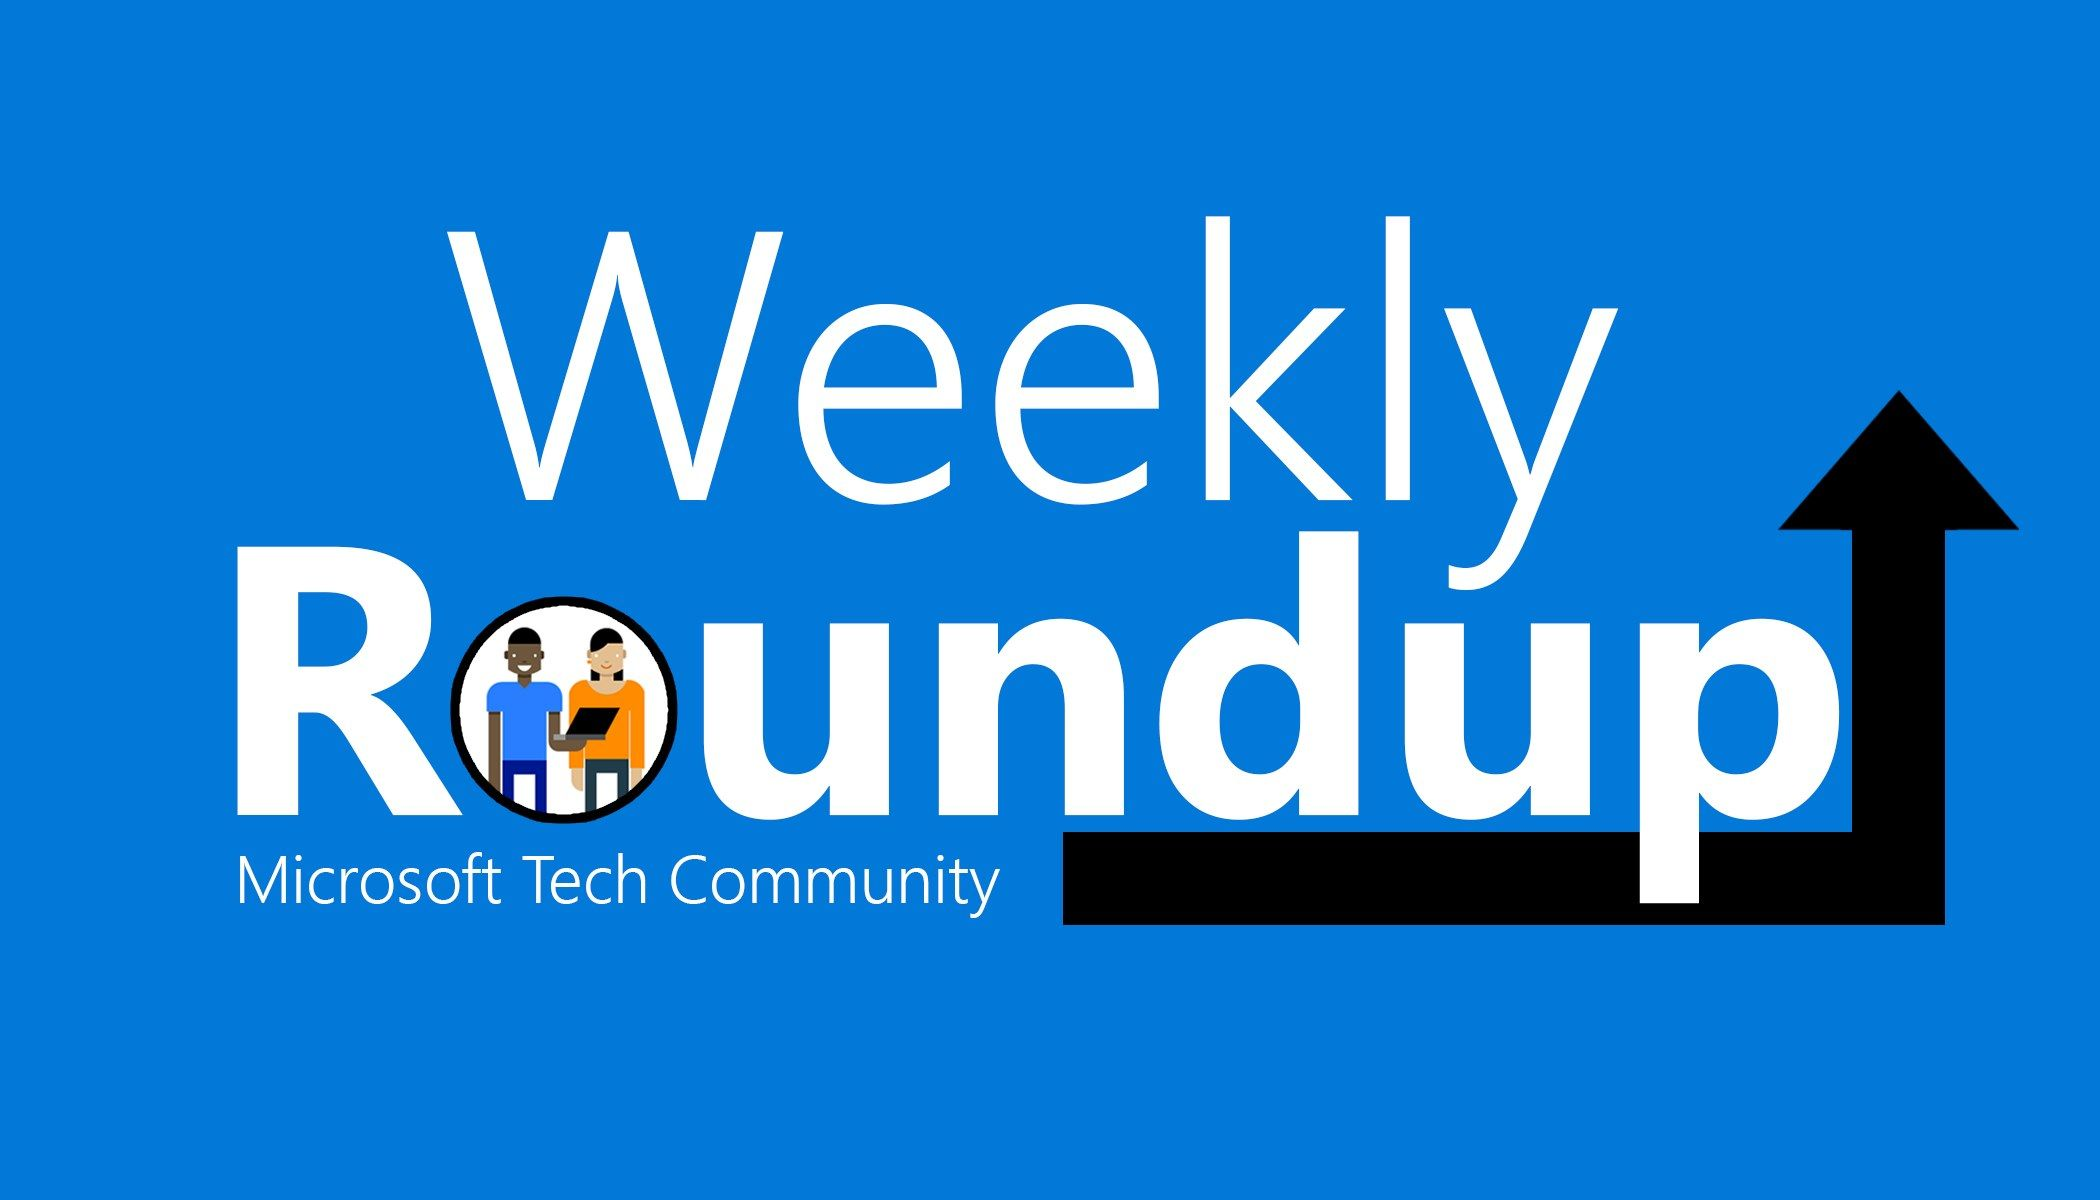 The September 6th Weekly Roundup is Posted! - Microsoft Tech